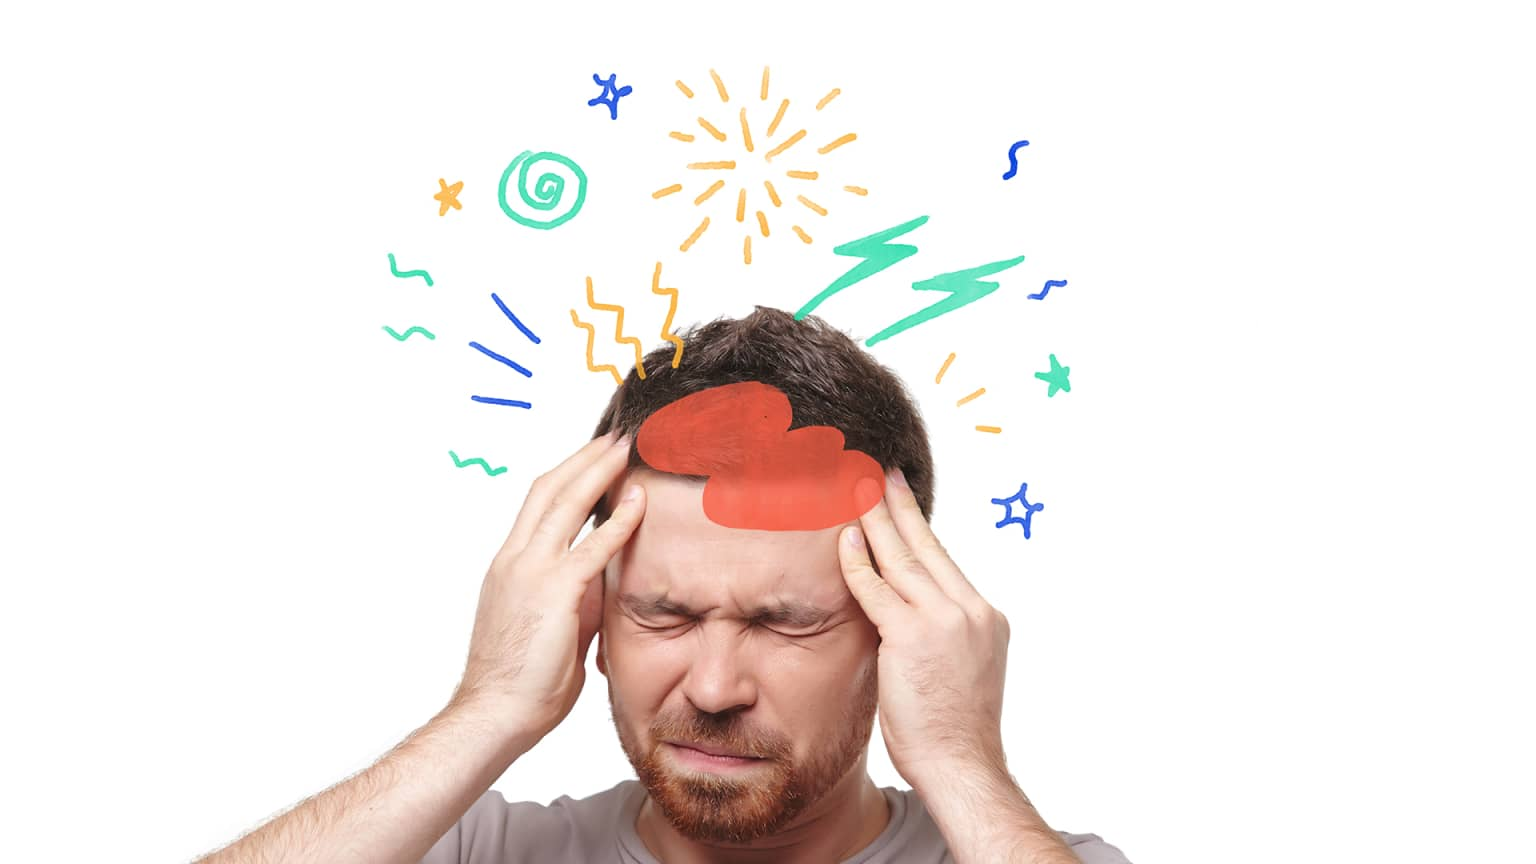 What a headache: Types, causes, and treatments